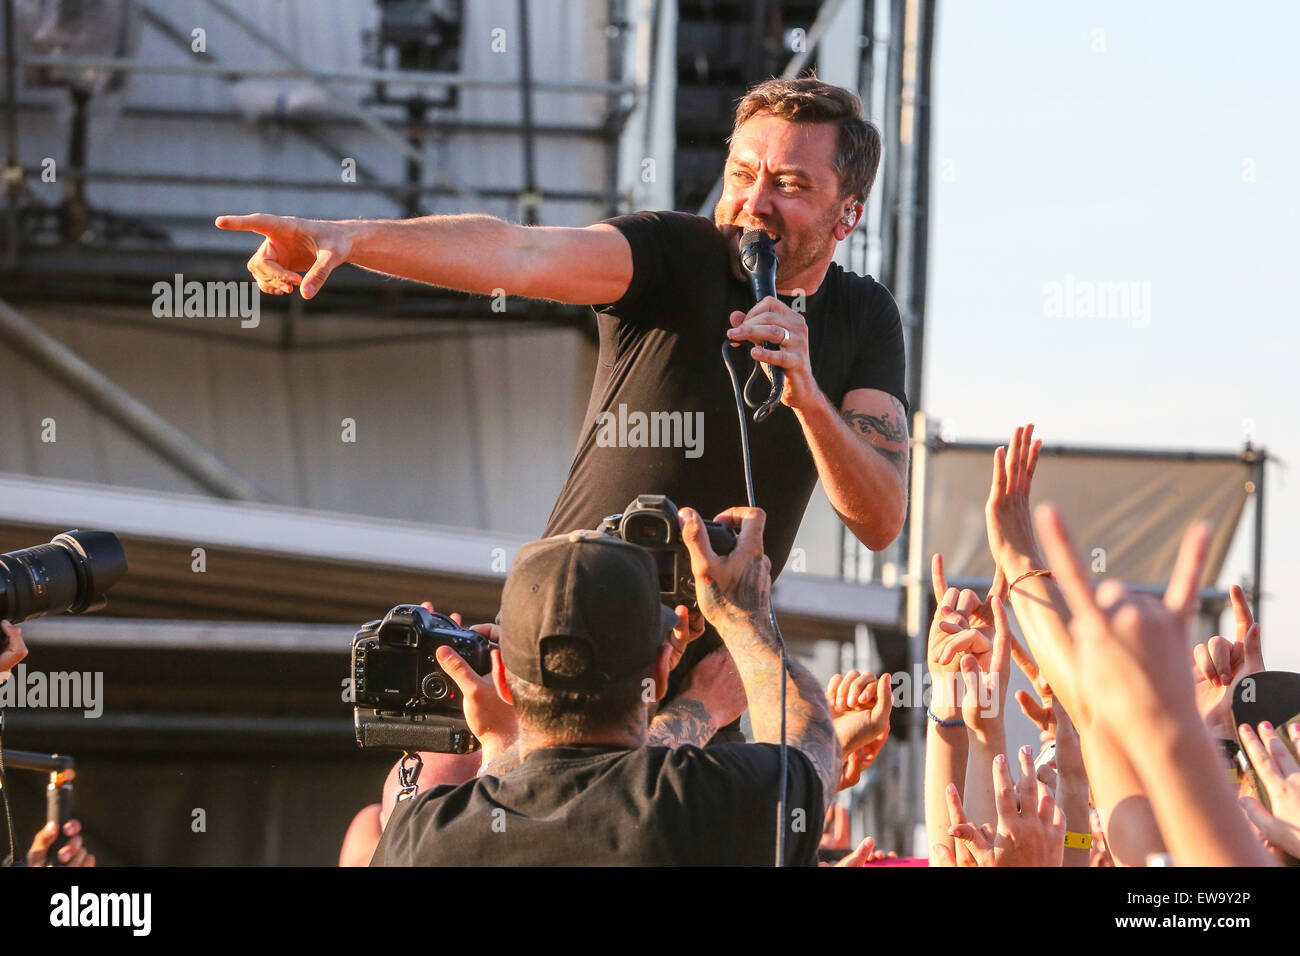 Rise Against performs at the 2015 Carolina Rebellion festival at the Charlotte Motor Speedway in Charlotte, NC. - Stock Image